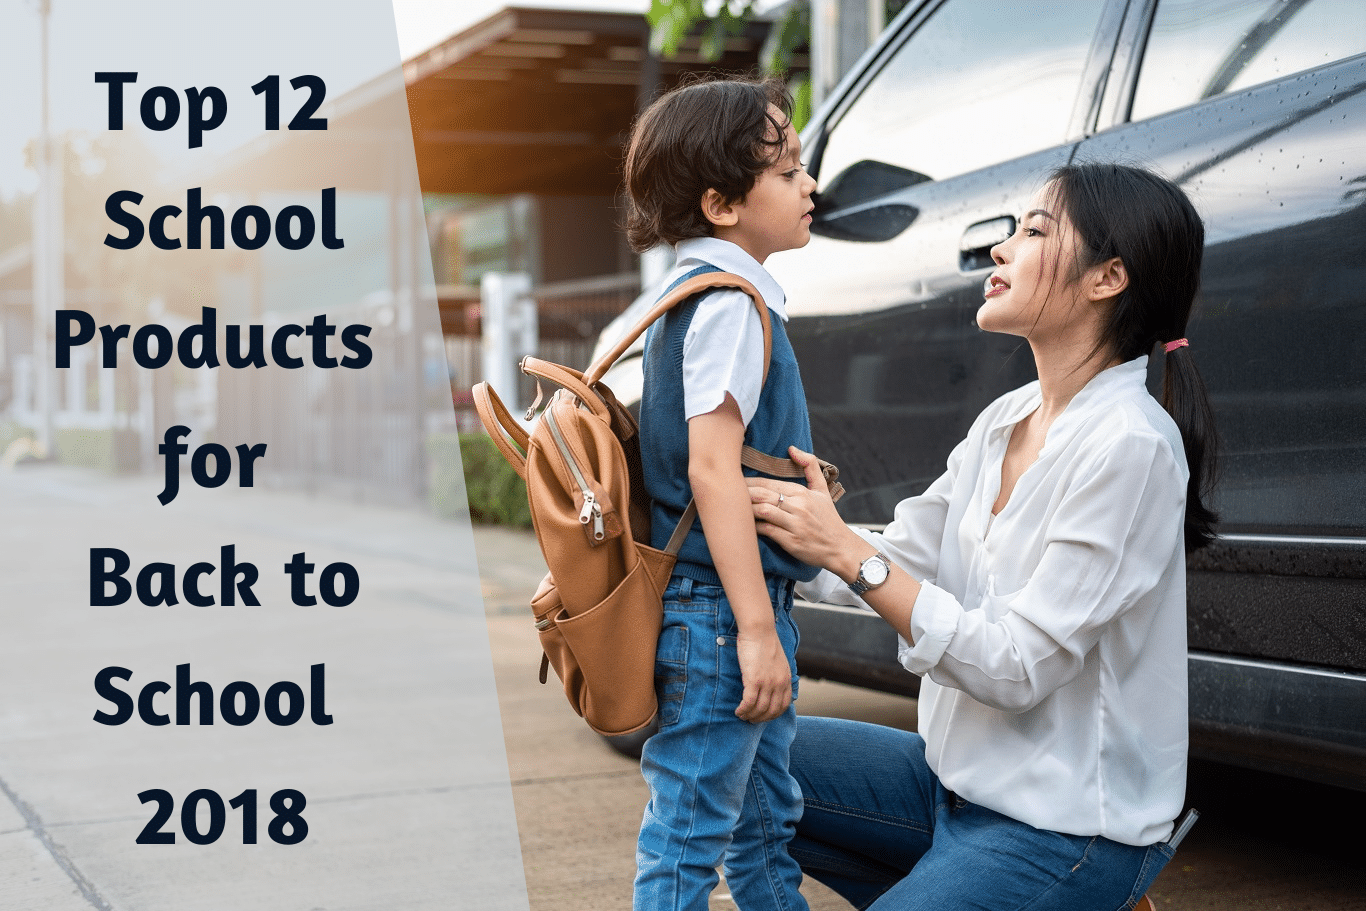 Top 12 School Products for Back to School 2018